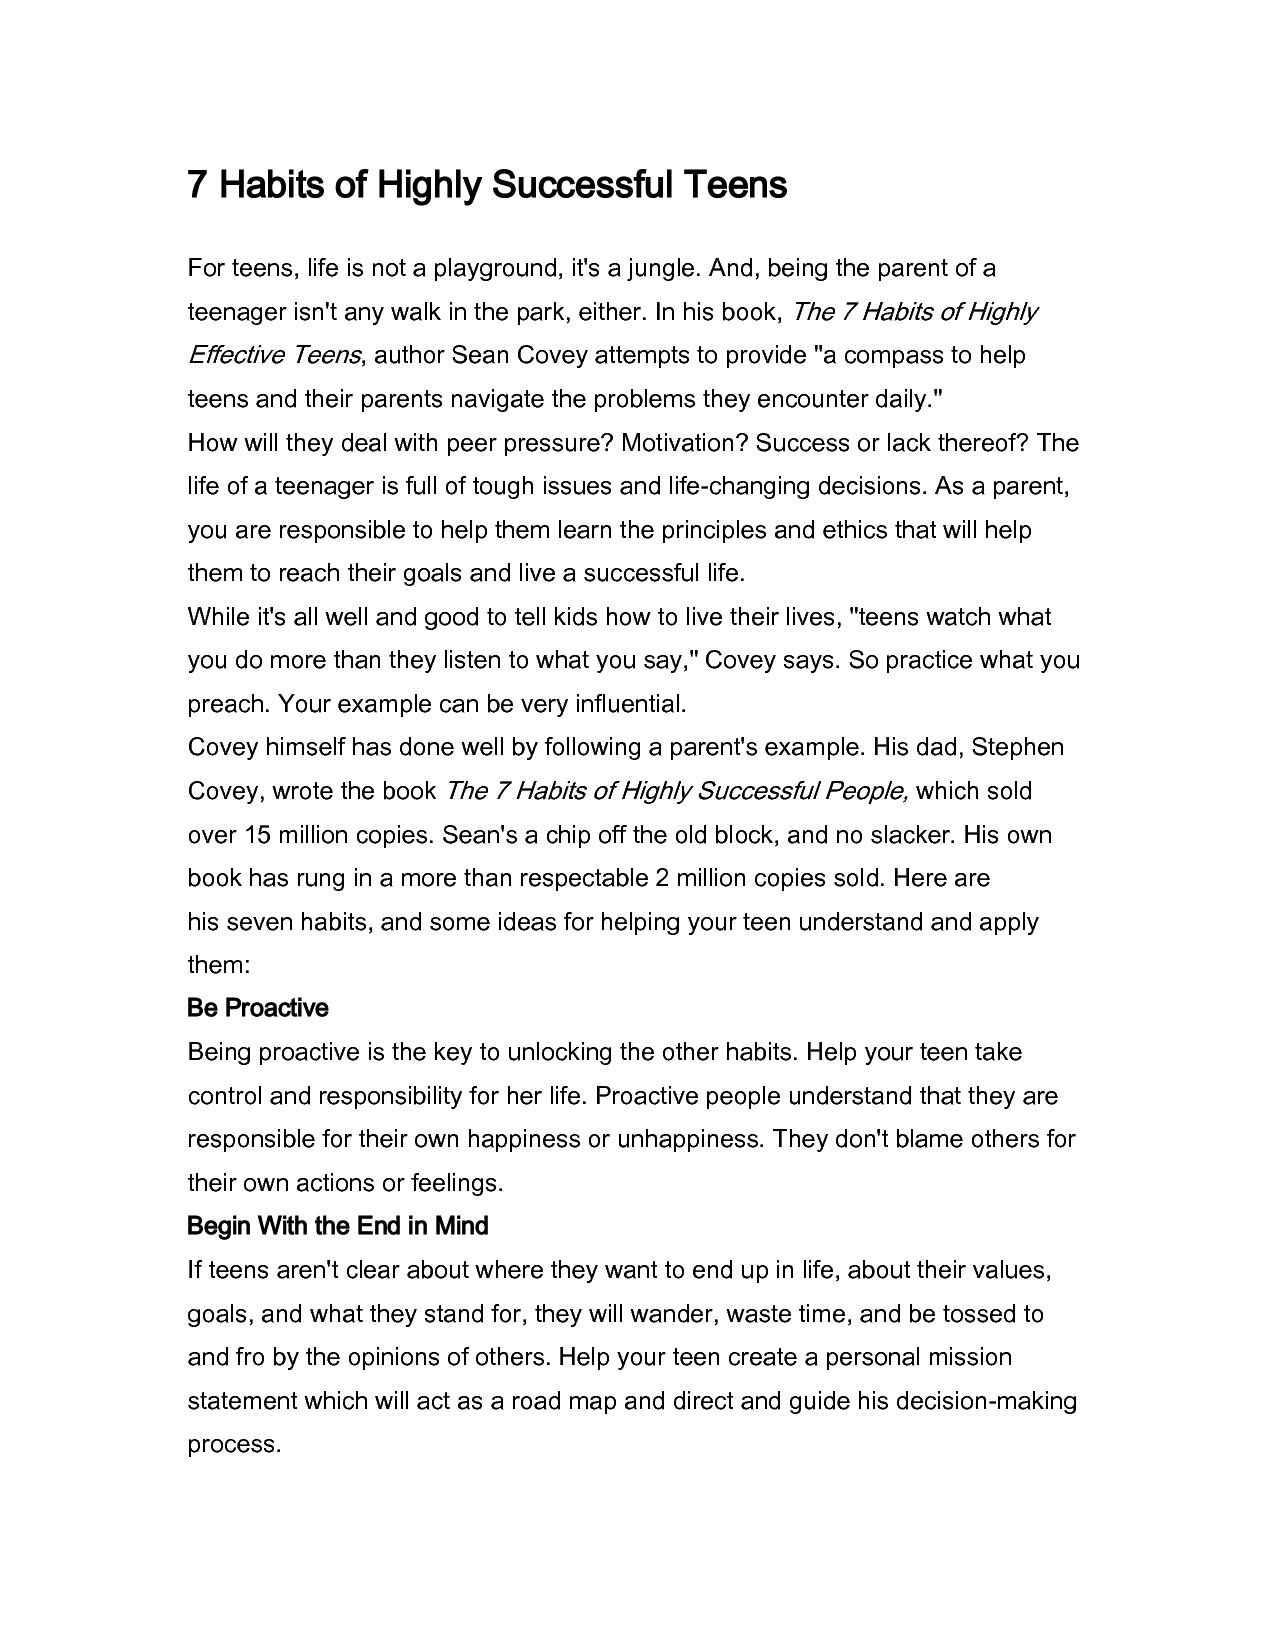 Worksheet 7 Habits Of Highly Effective Teens Worksheets